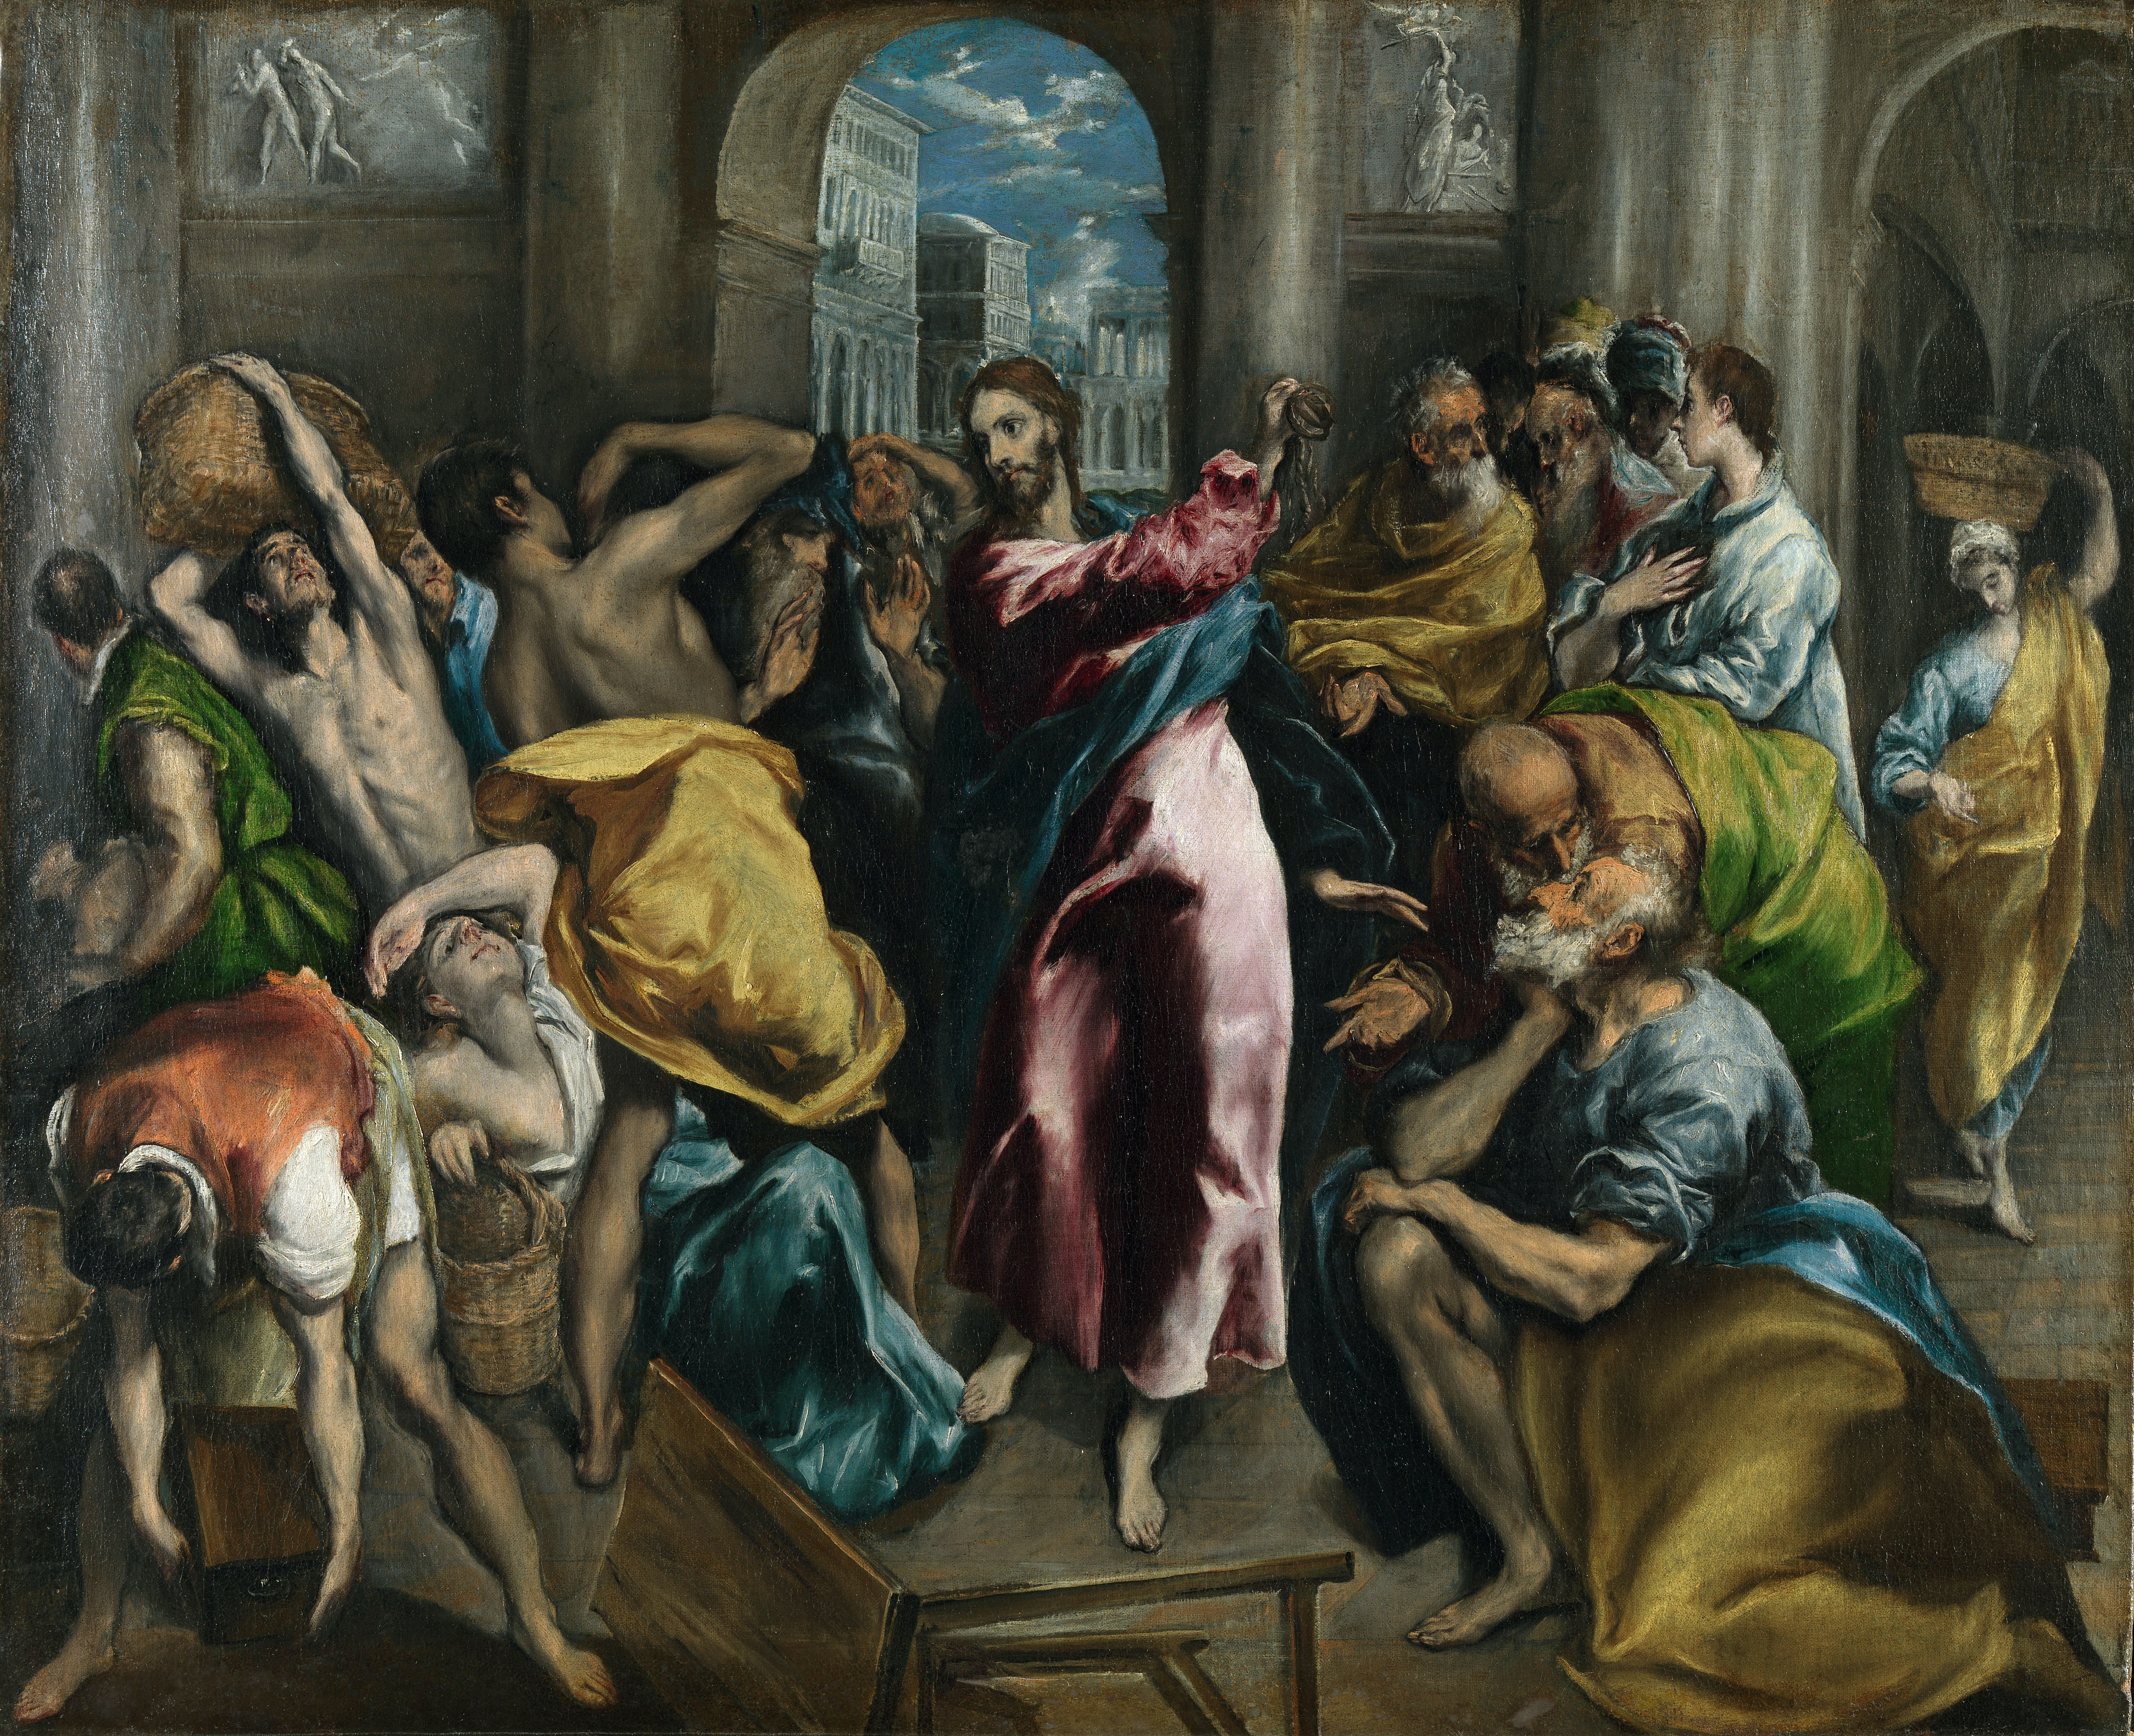 Christ in an inherently political demonstration: cleansing the temple